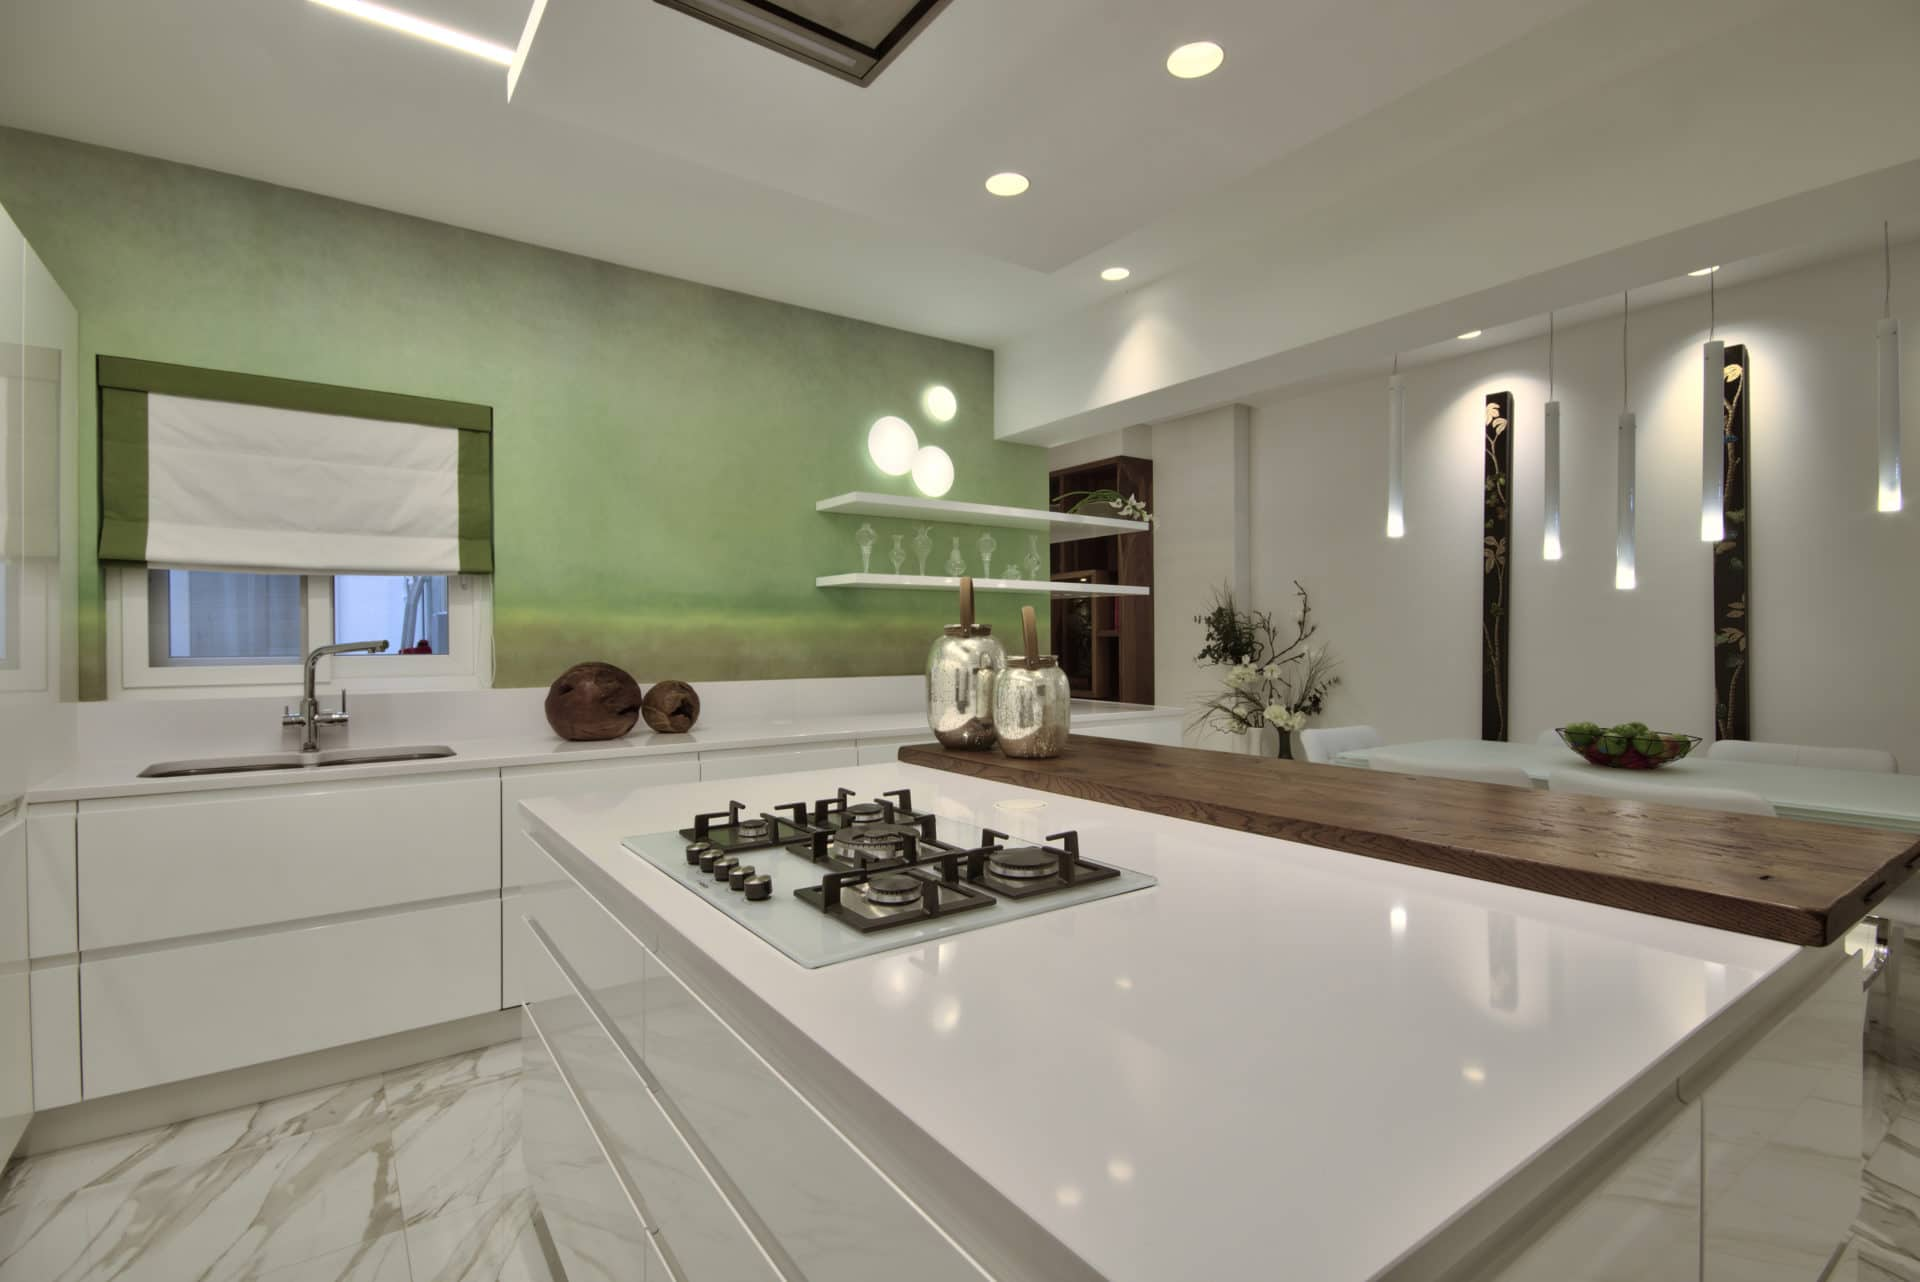 Kitchen Dining – white, wallpaper feature, green, wooden accents